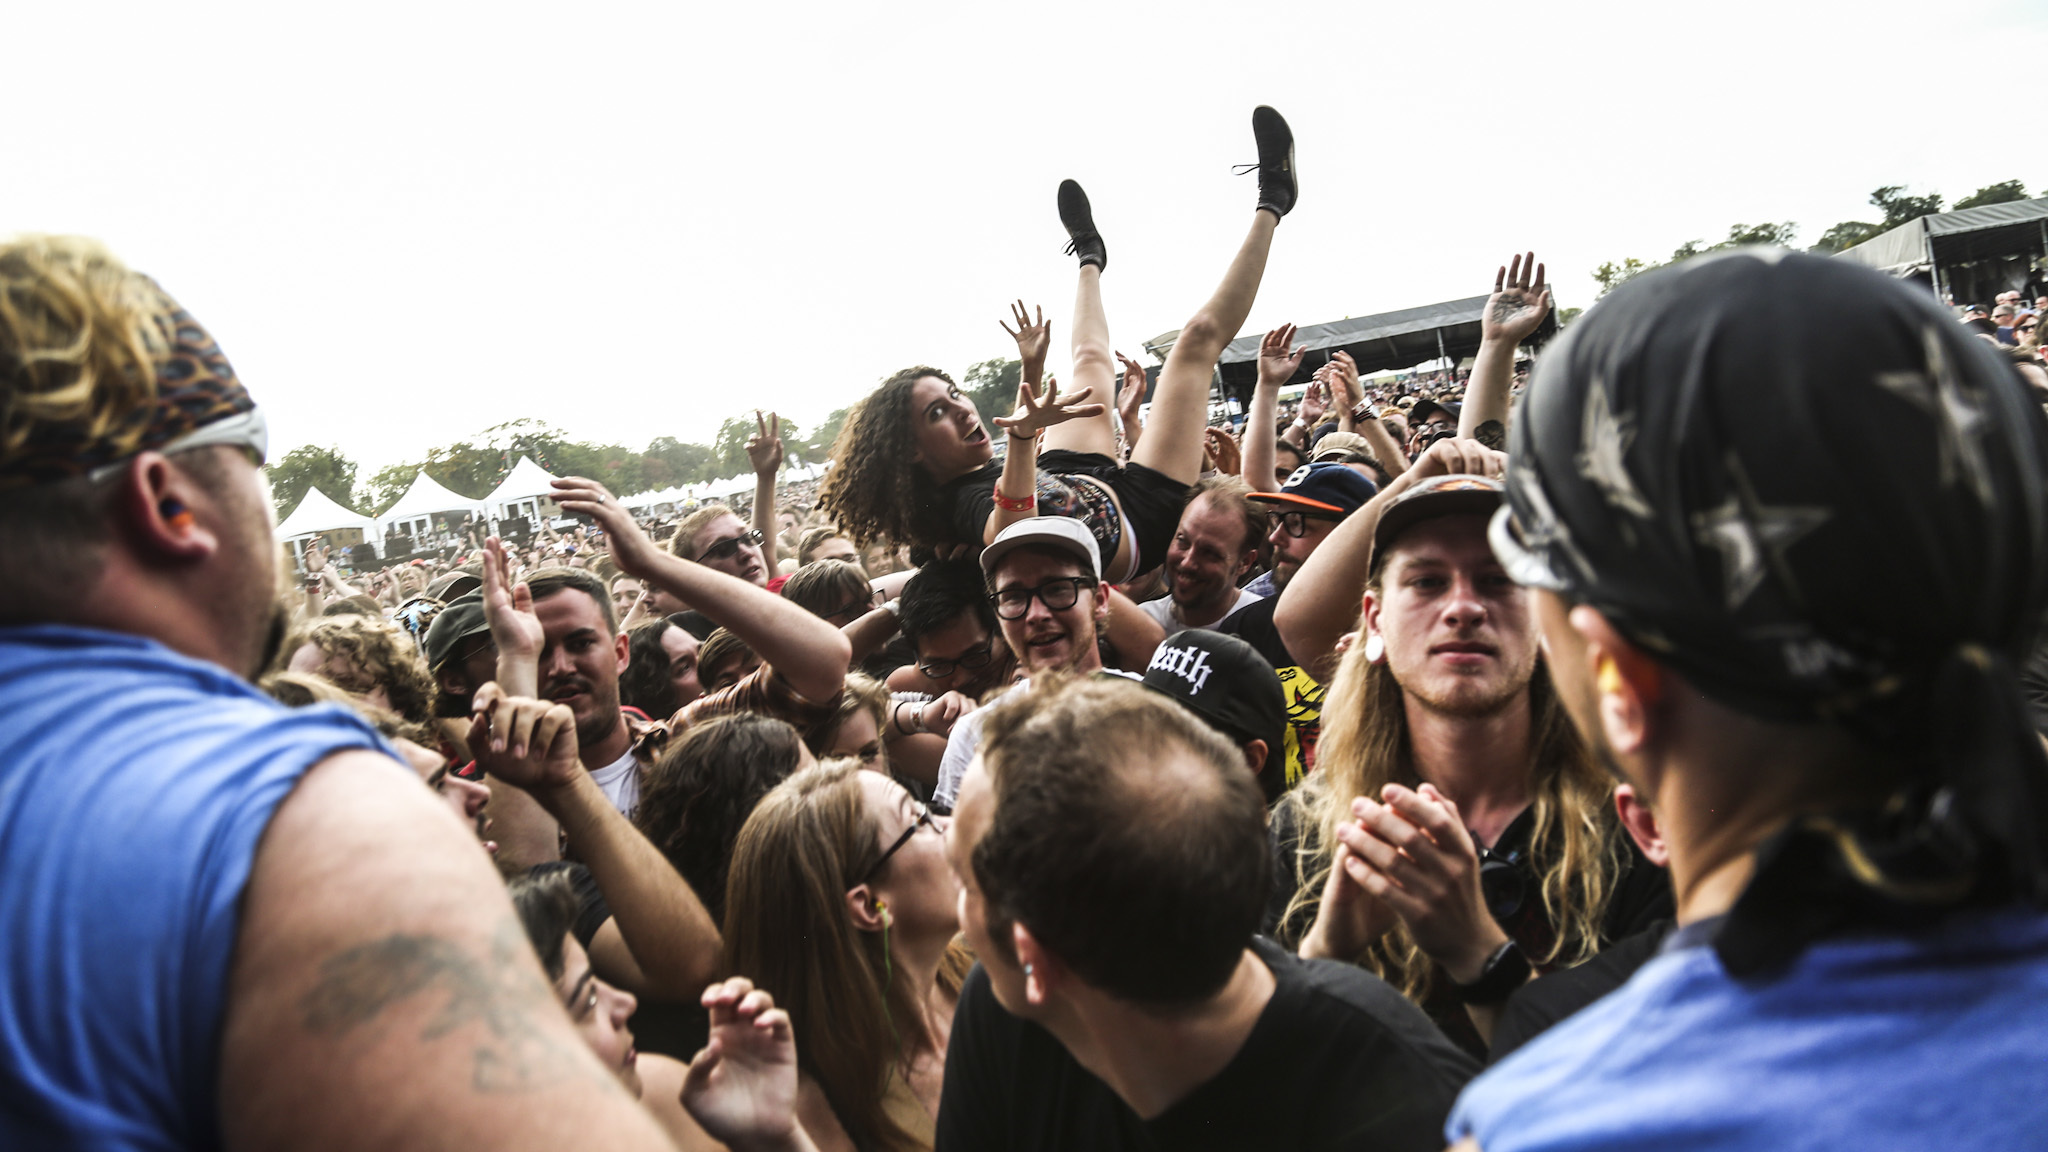 The five best things we saw on Sunday at Riot Fest